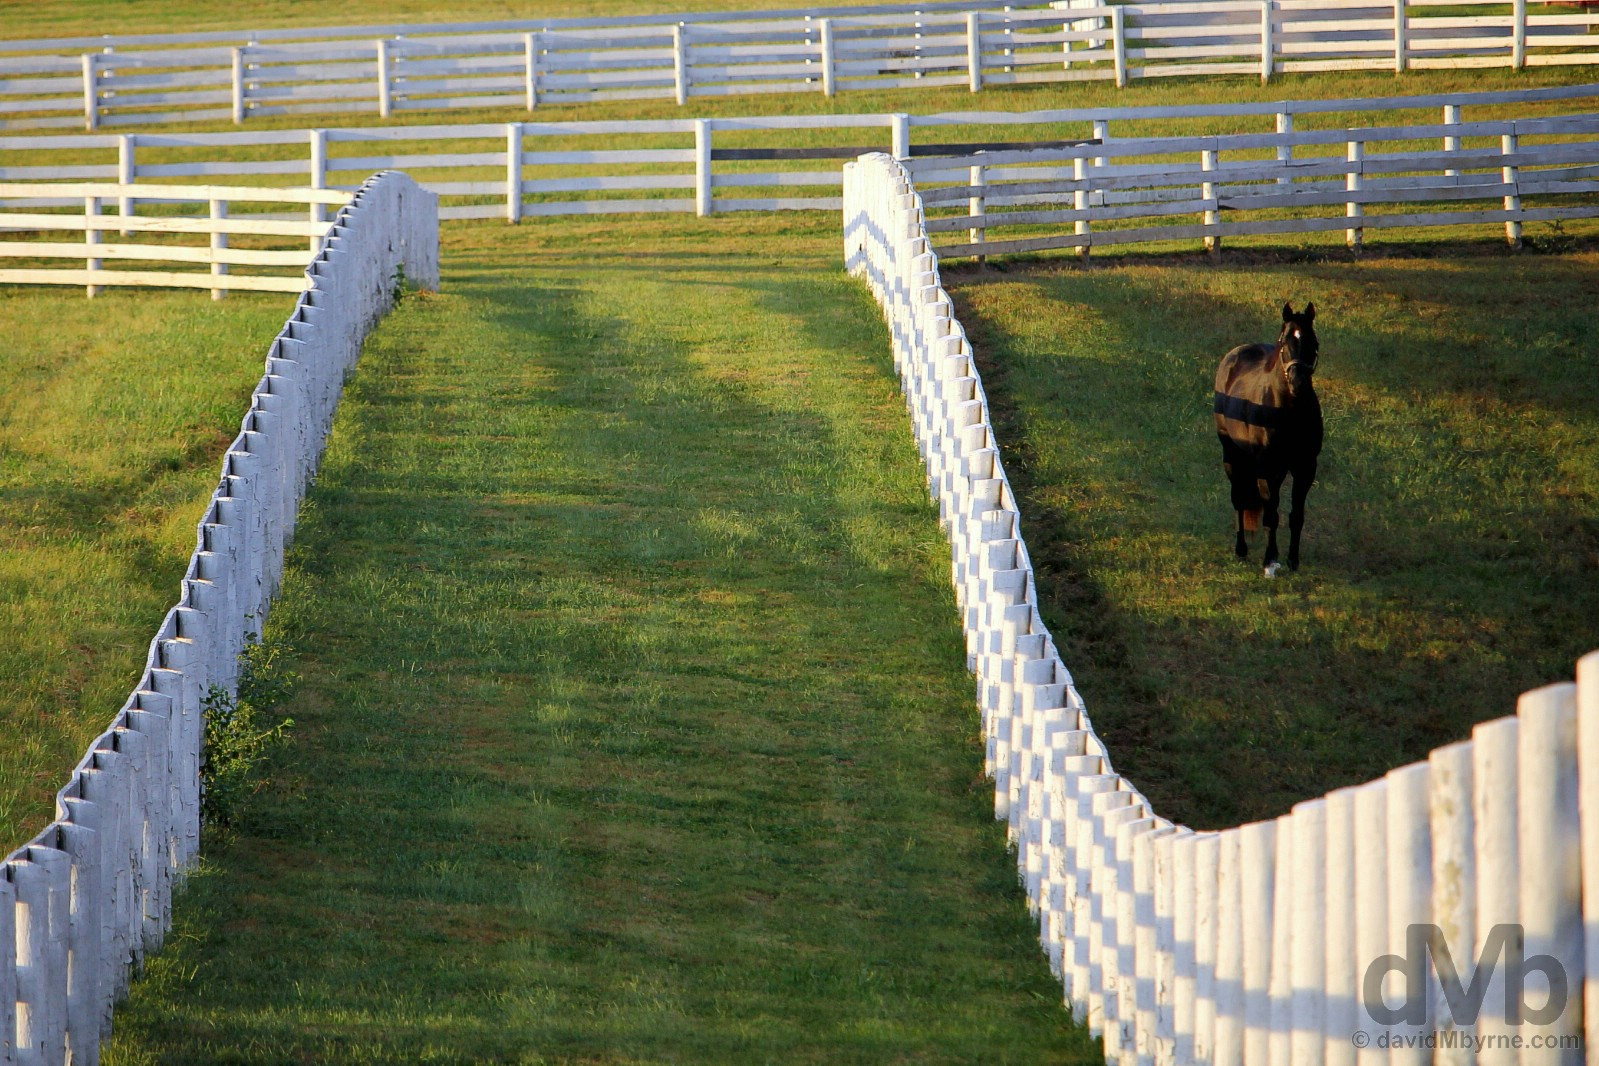 Late afternoon shadows at Calumet Farm in Lexington, Kentucky, USA. September 26, 2016.